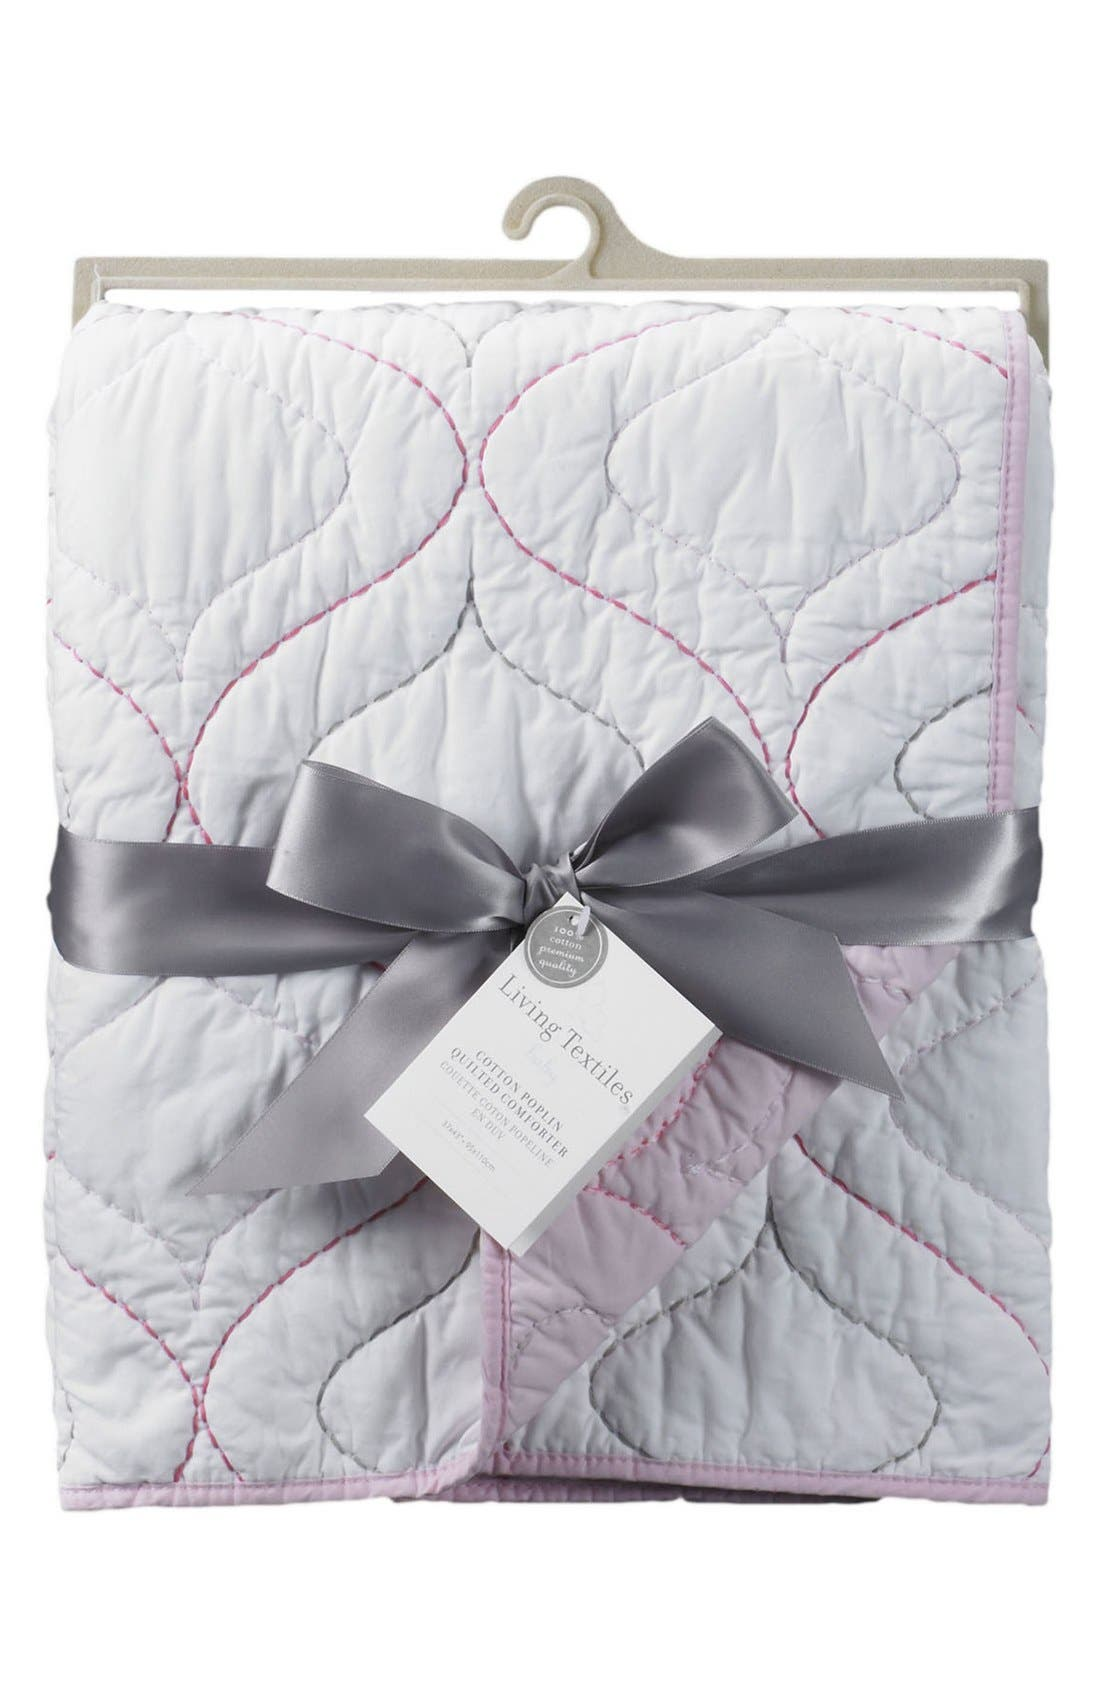 Poplin Quilted Comforter,                         Main,                         color, 100